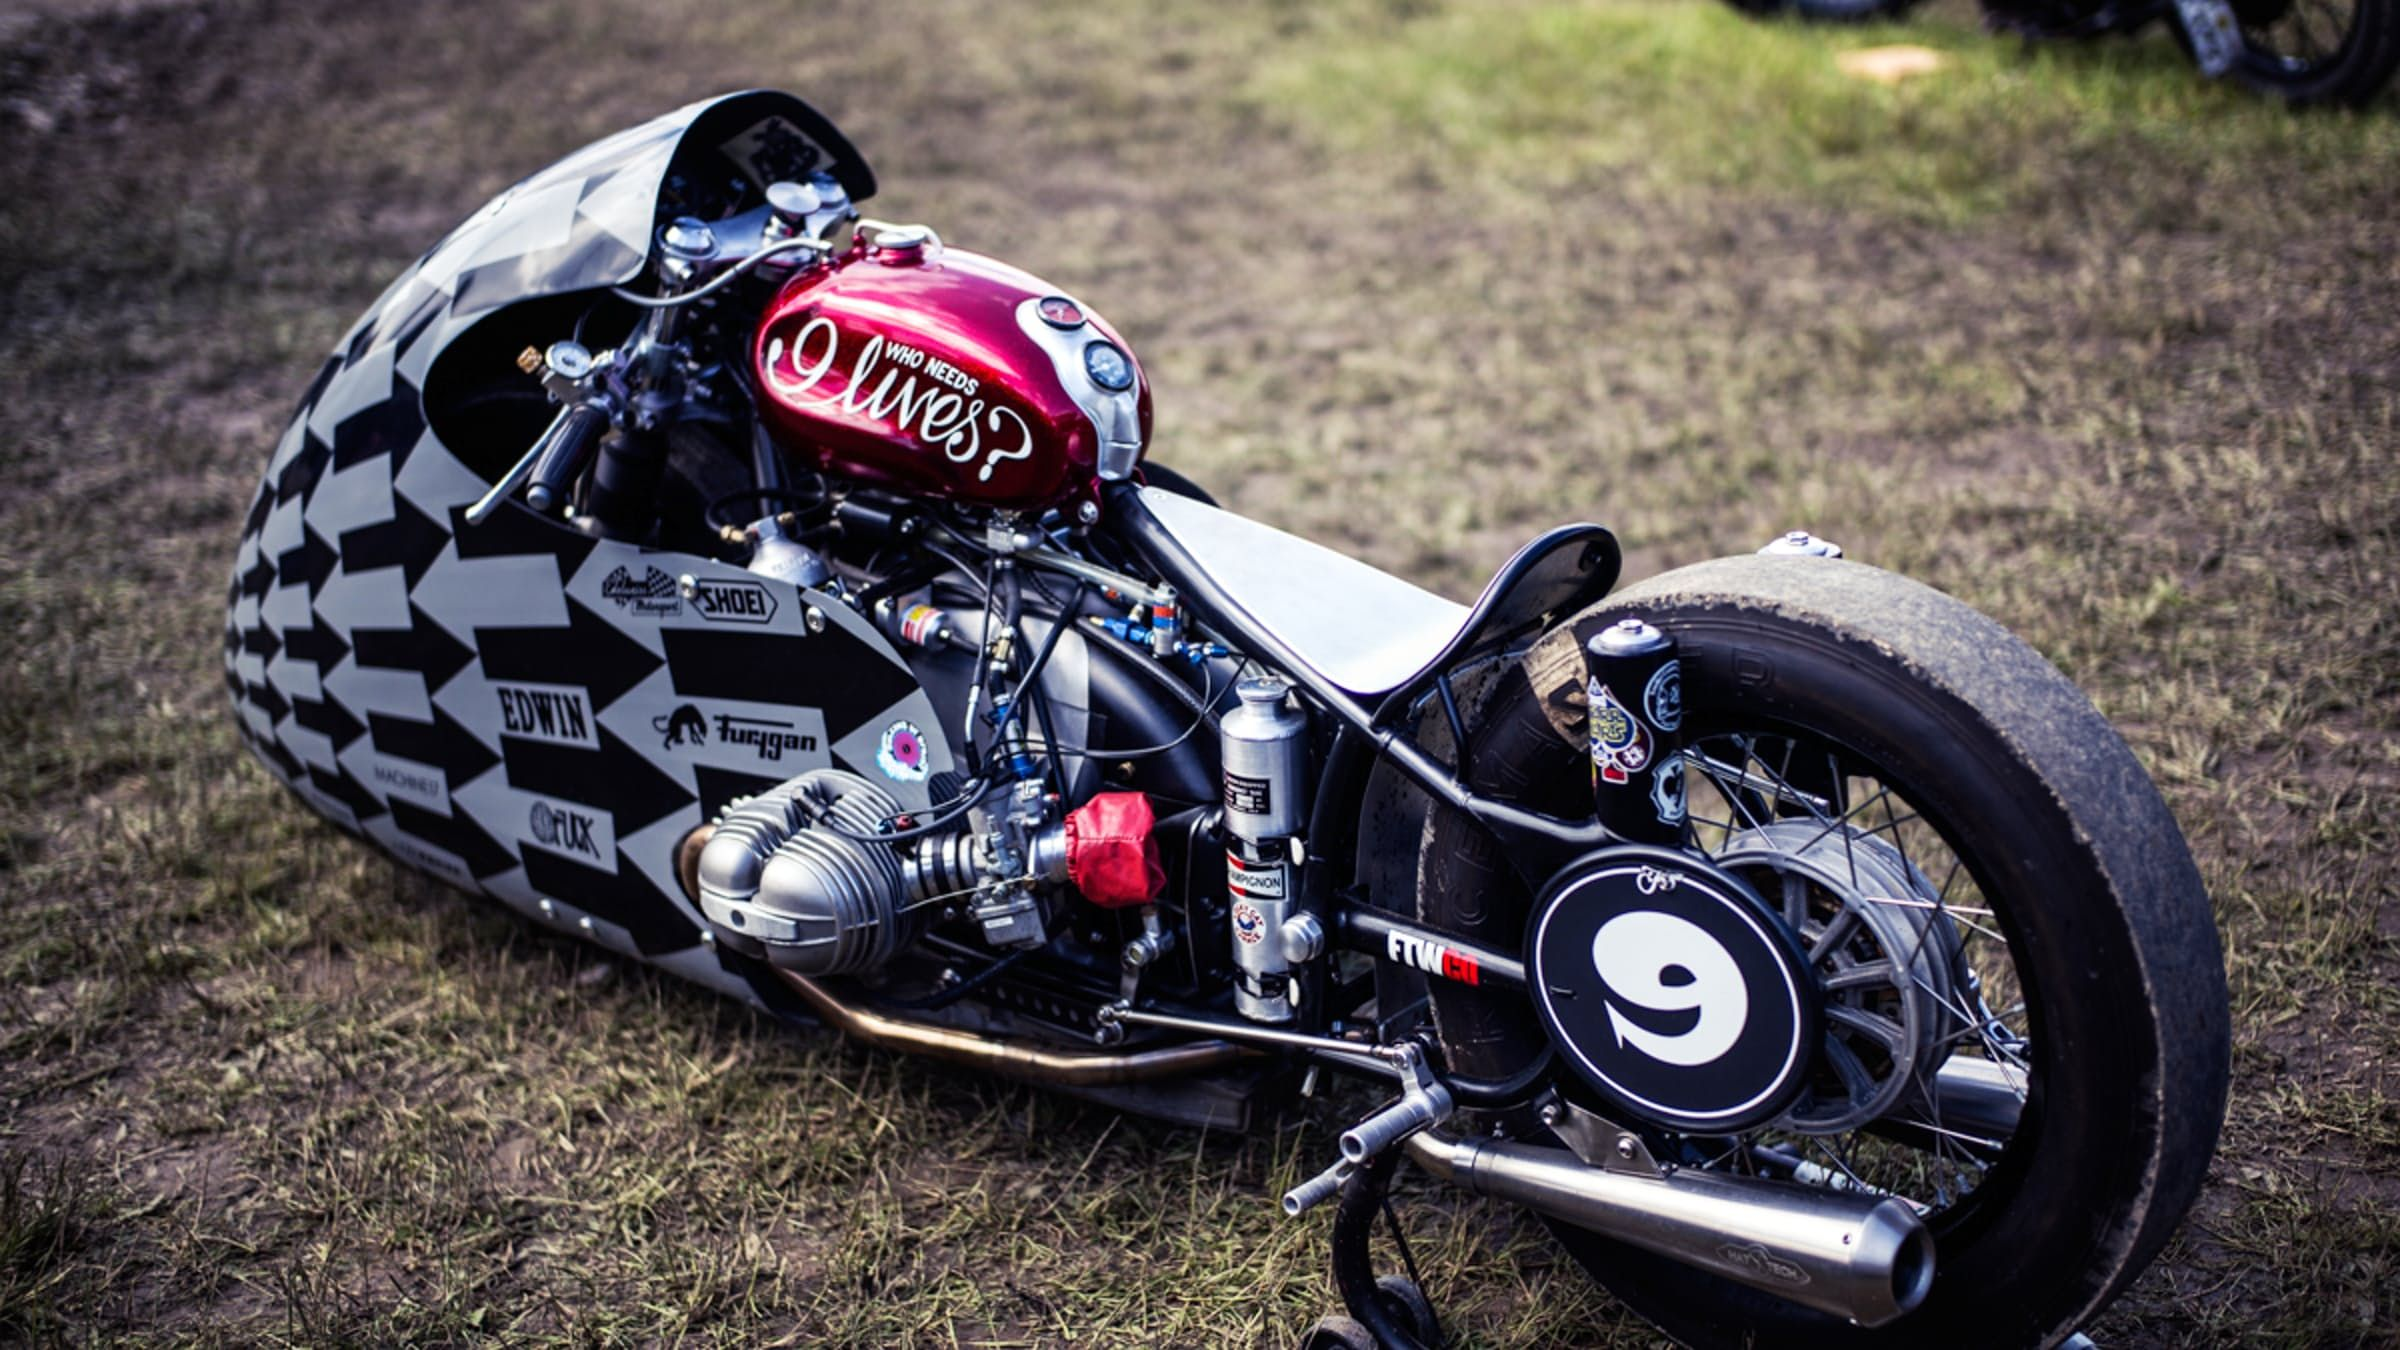 Motorcycles in general, modified bikes in particular, and the life